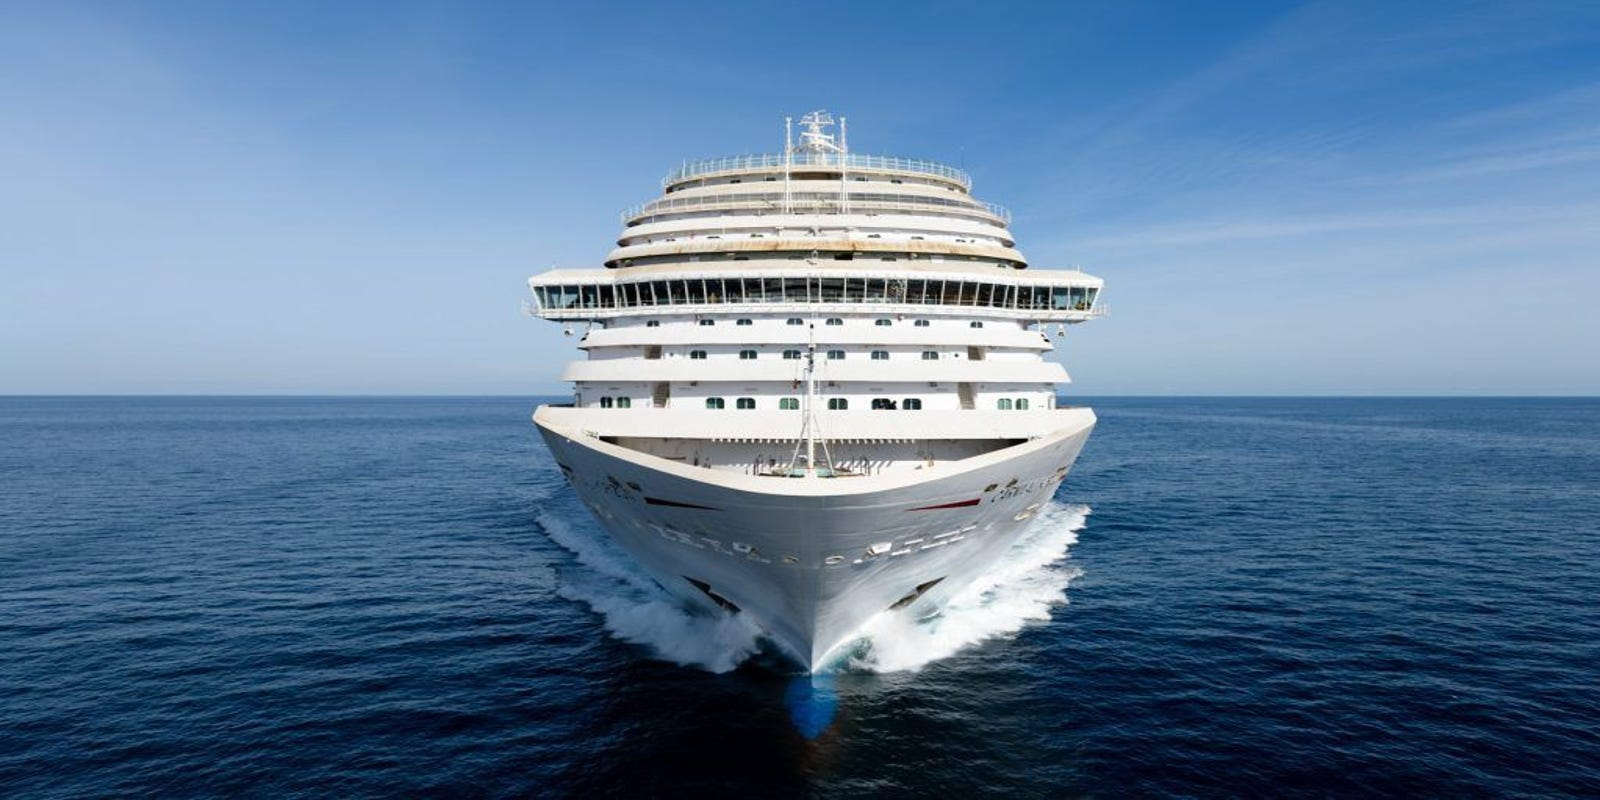 USA TODAY preview: The hottest new cruise ships of 2019